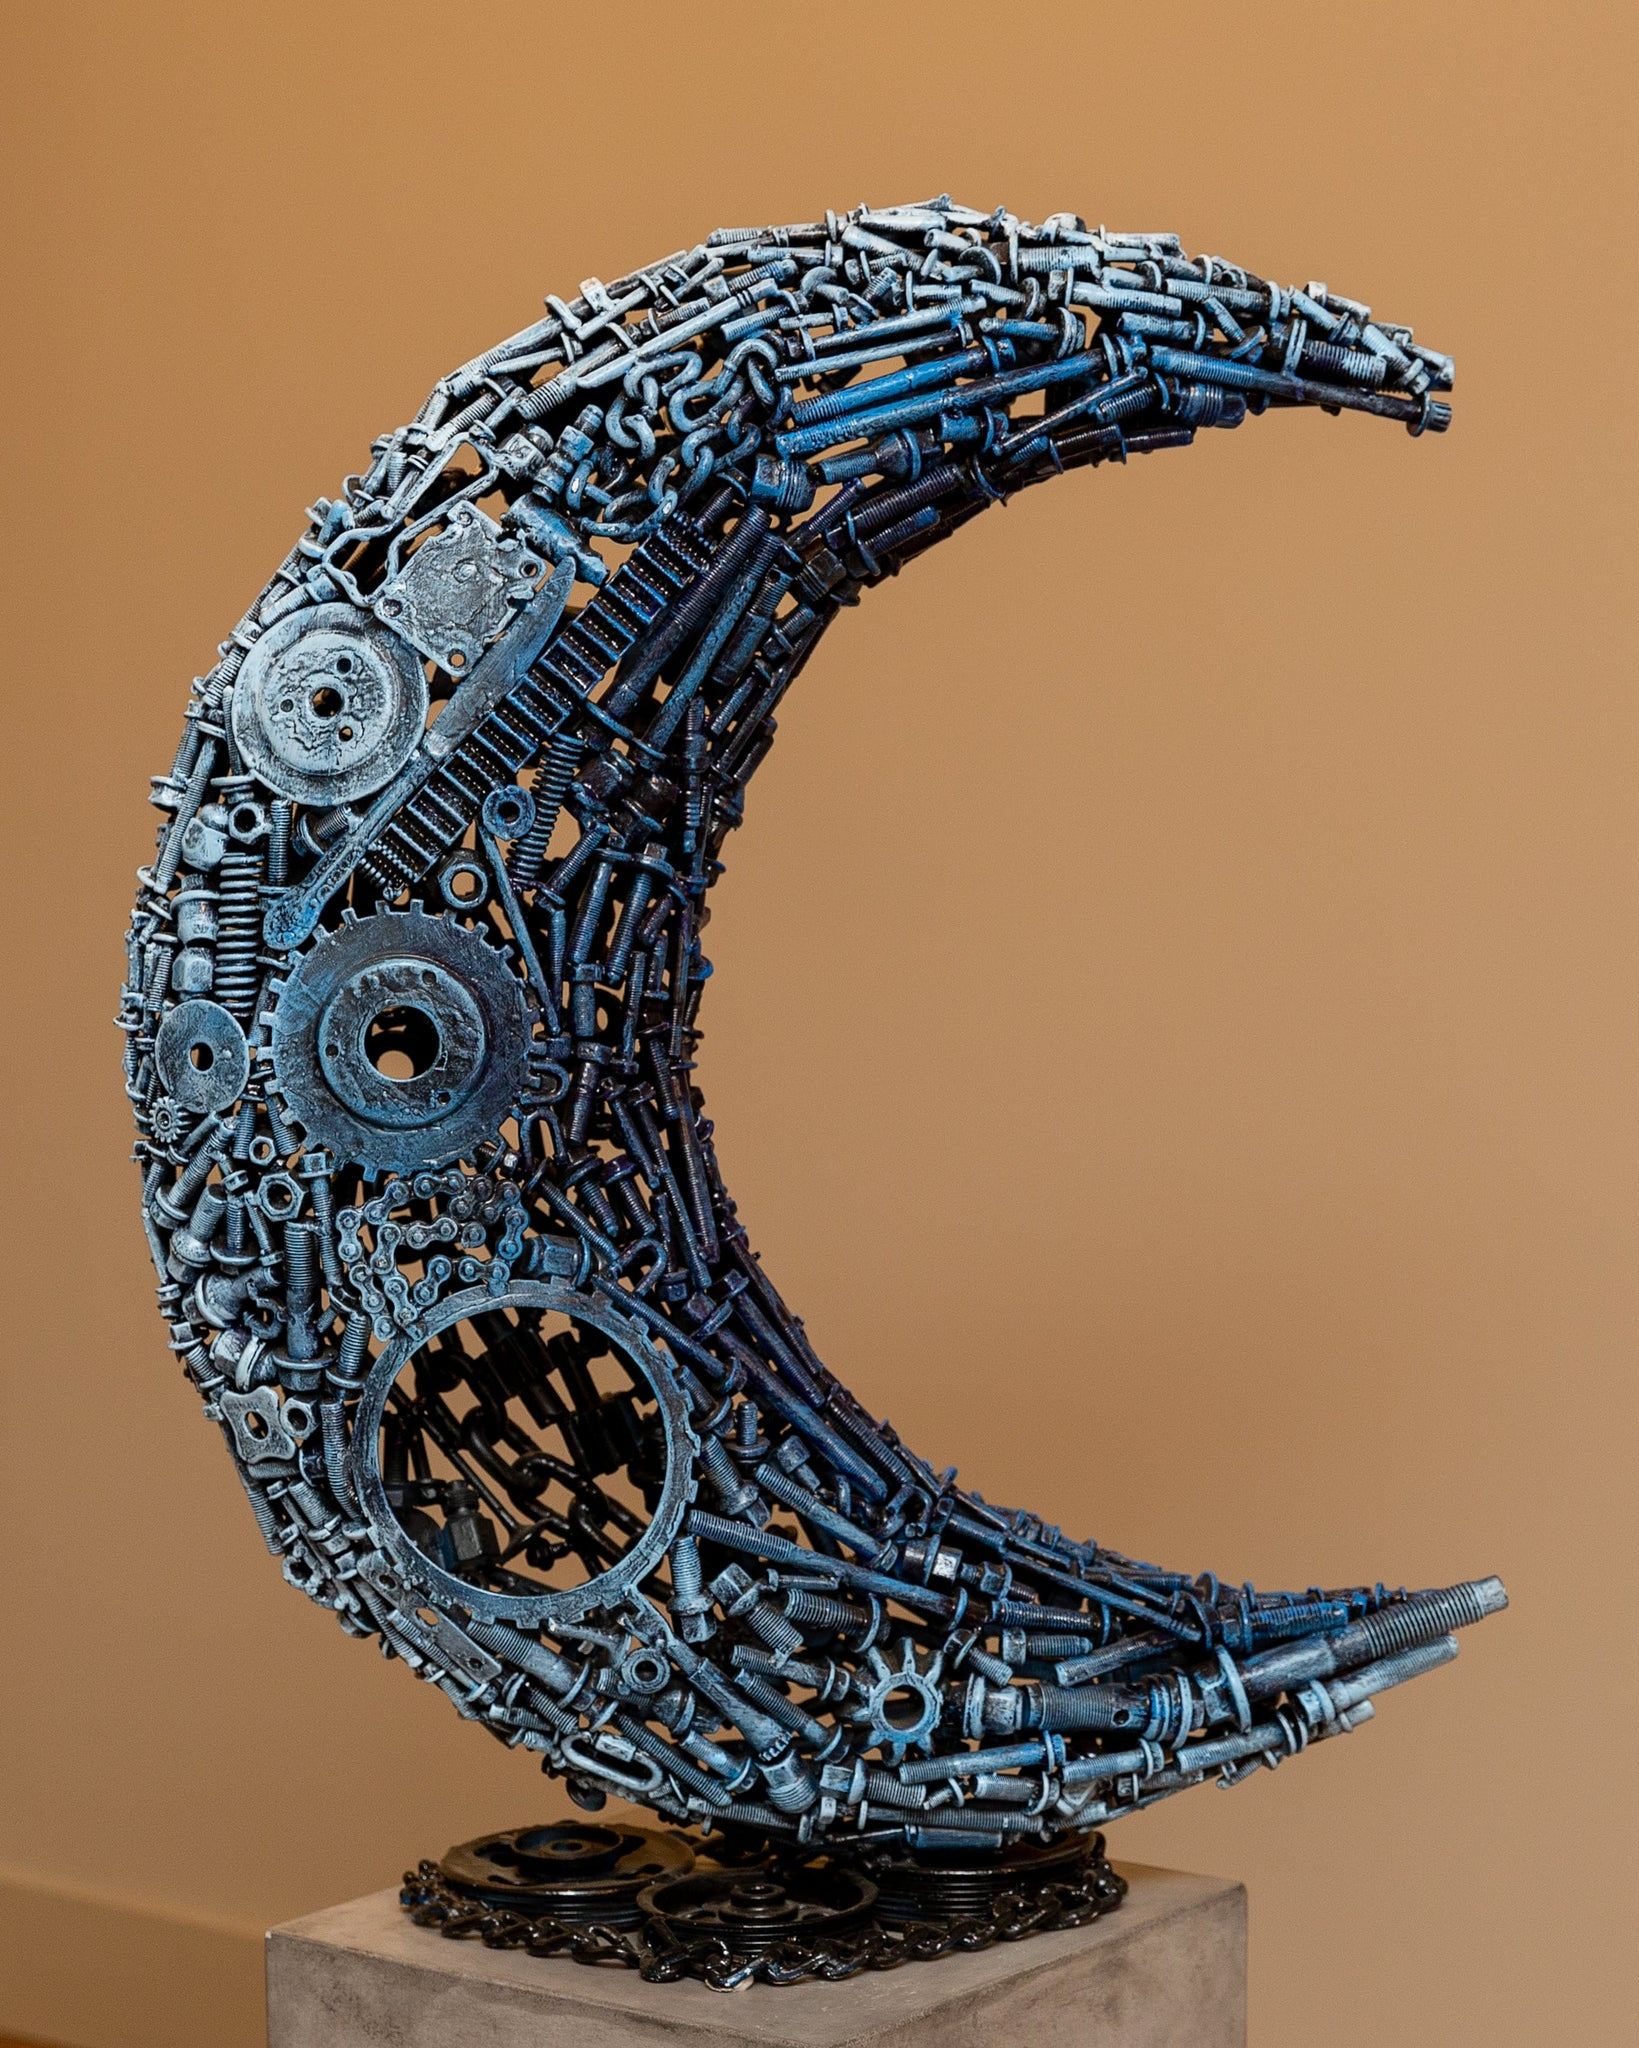 La Luna by Juan SotoMayor